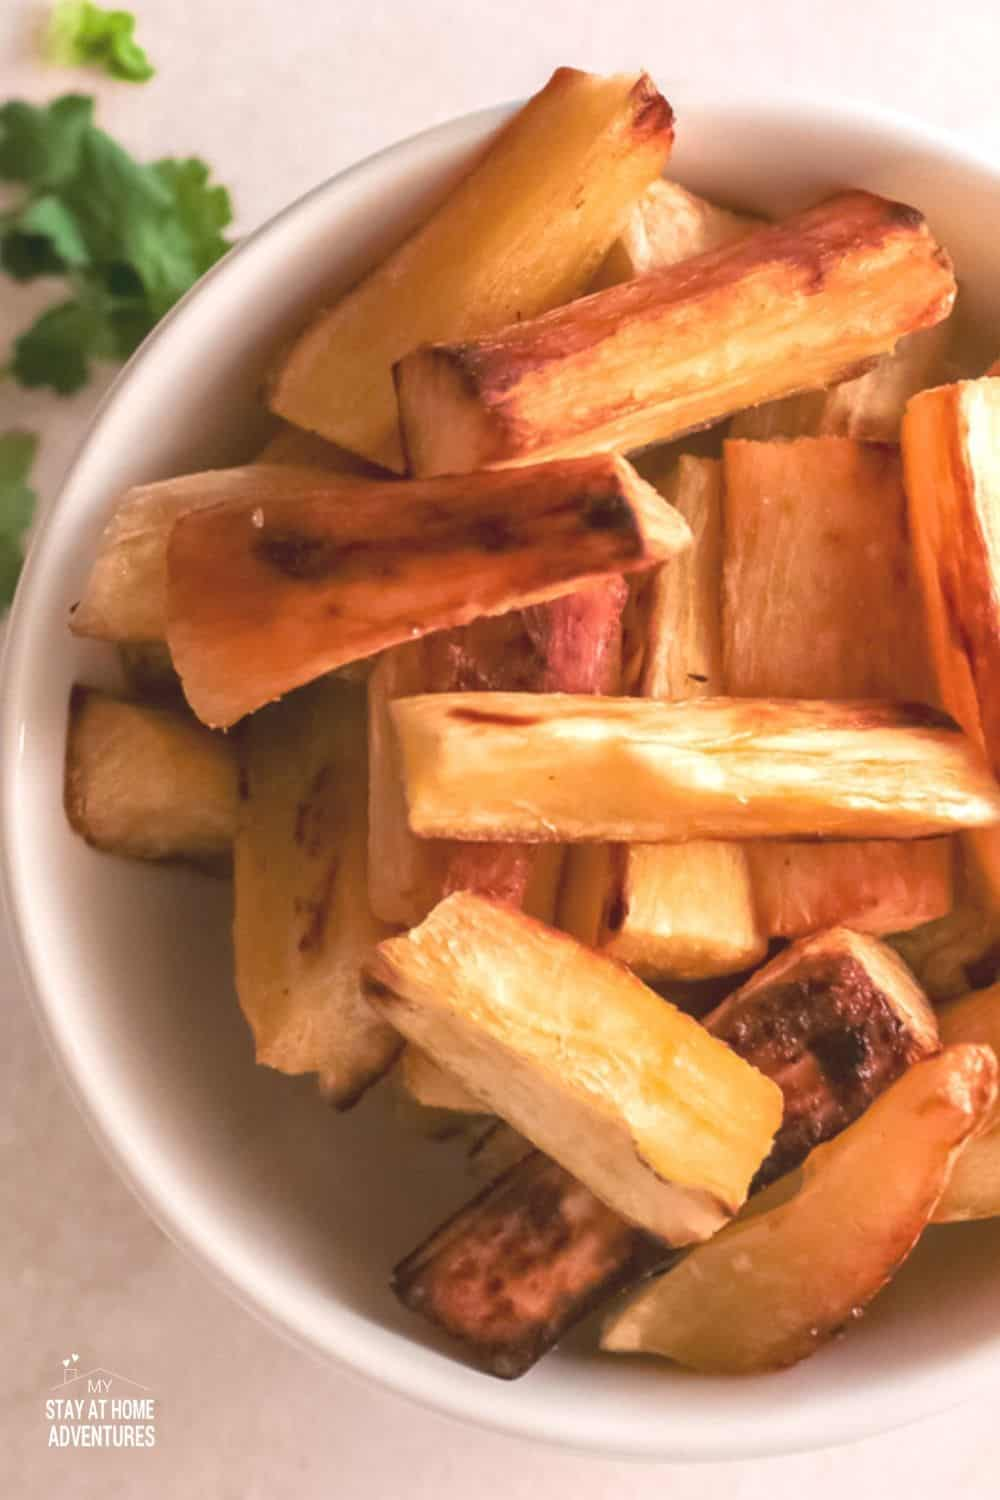 With only 3 ingredients, baked to crispiness on the outside and tender on the inside, this Yuca Fries is the perfect hearty snack. via @mystayathome